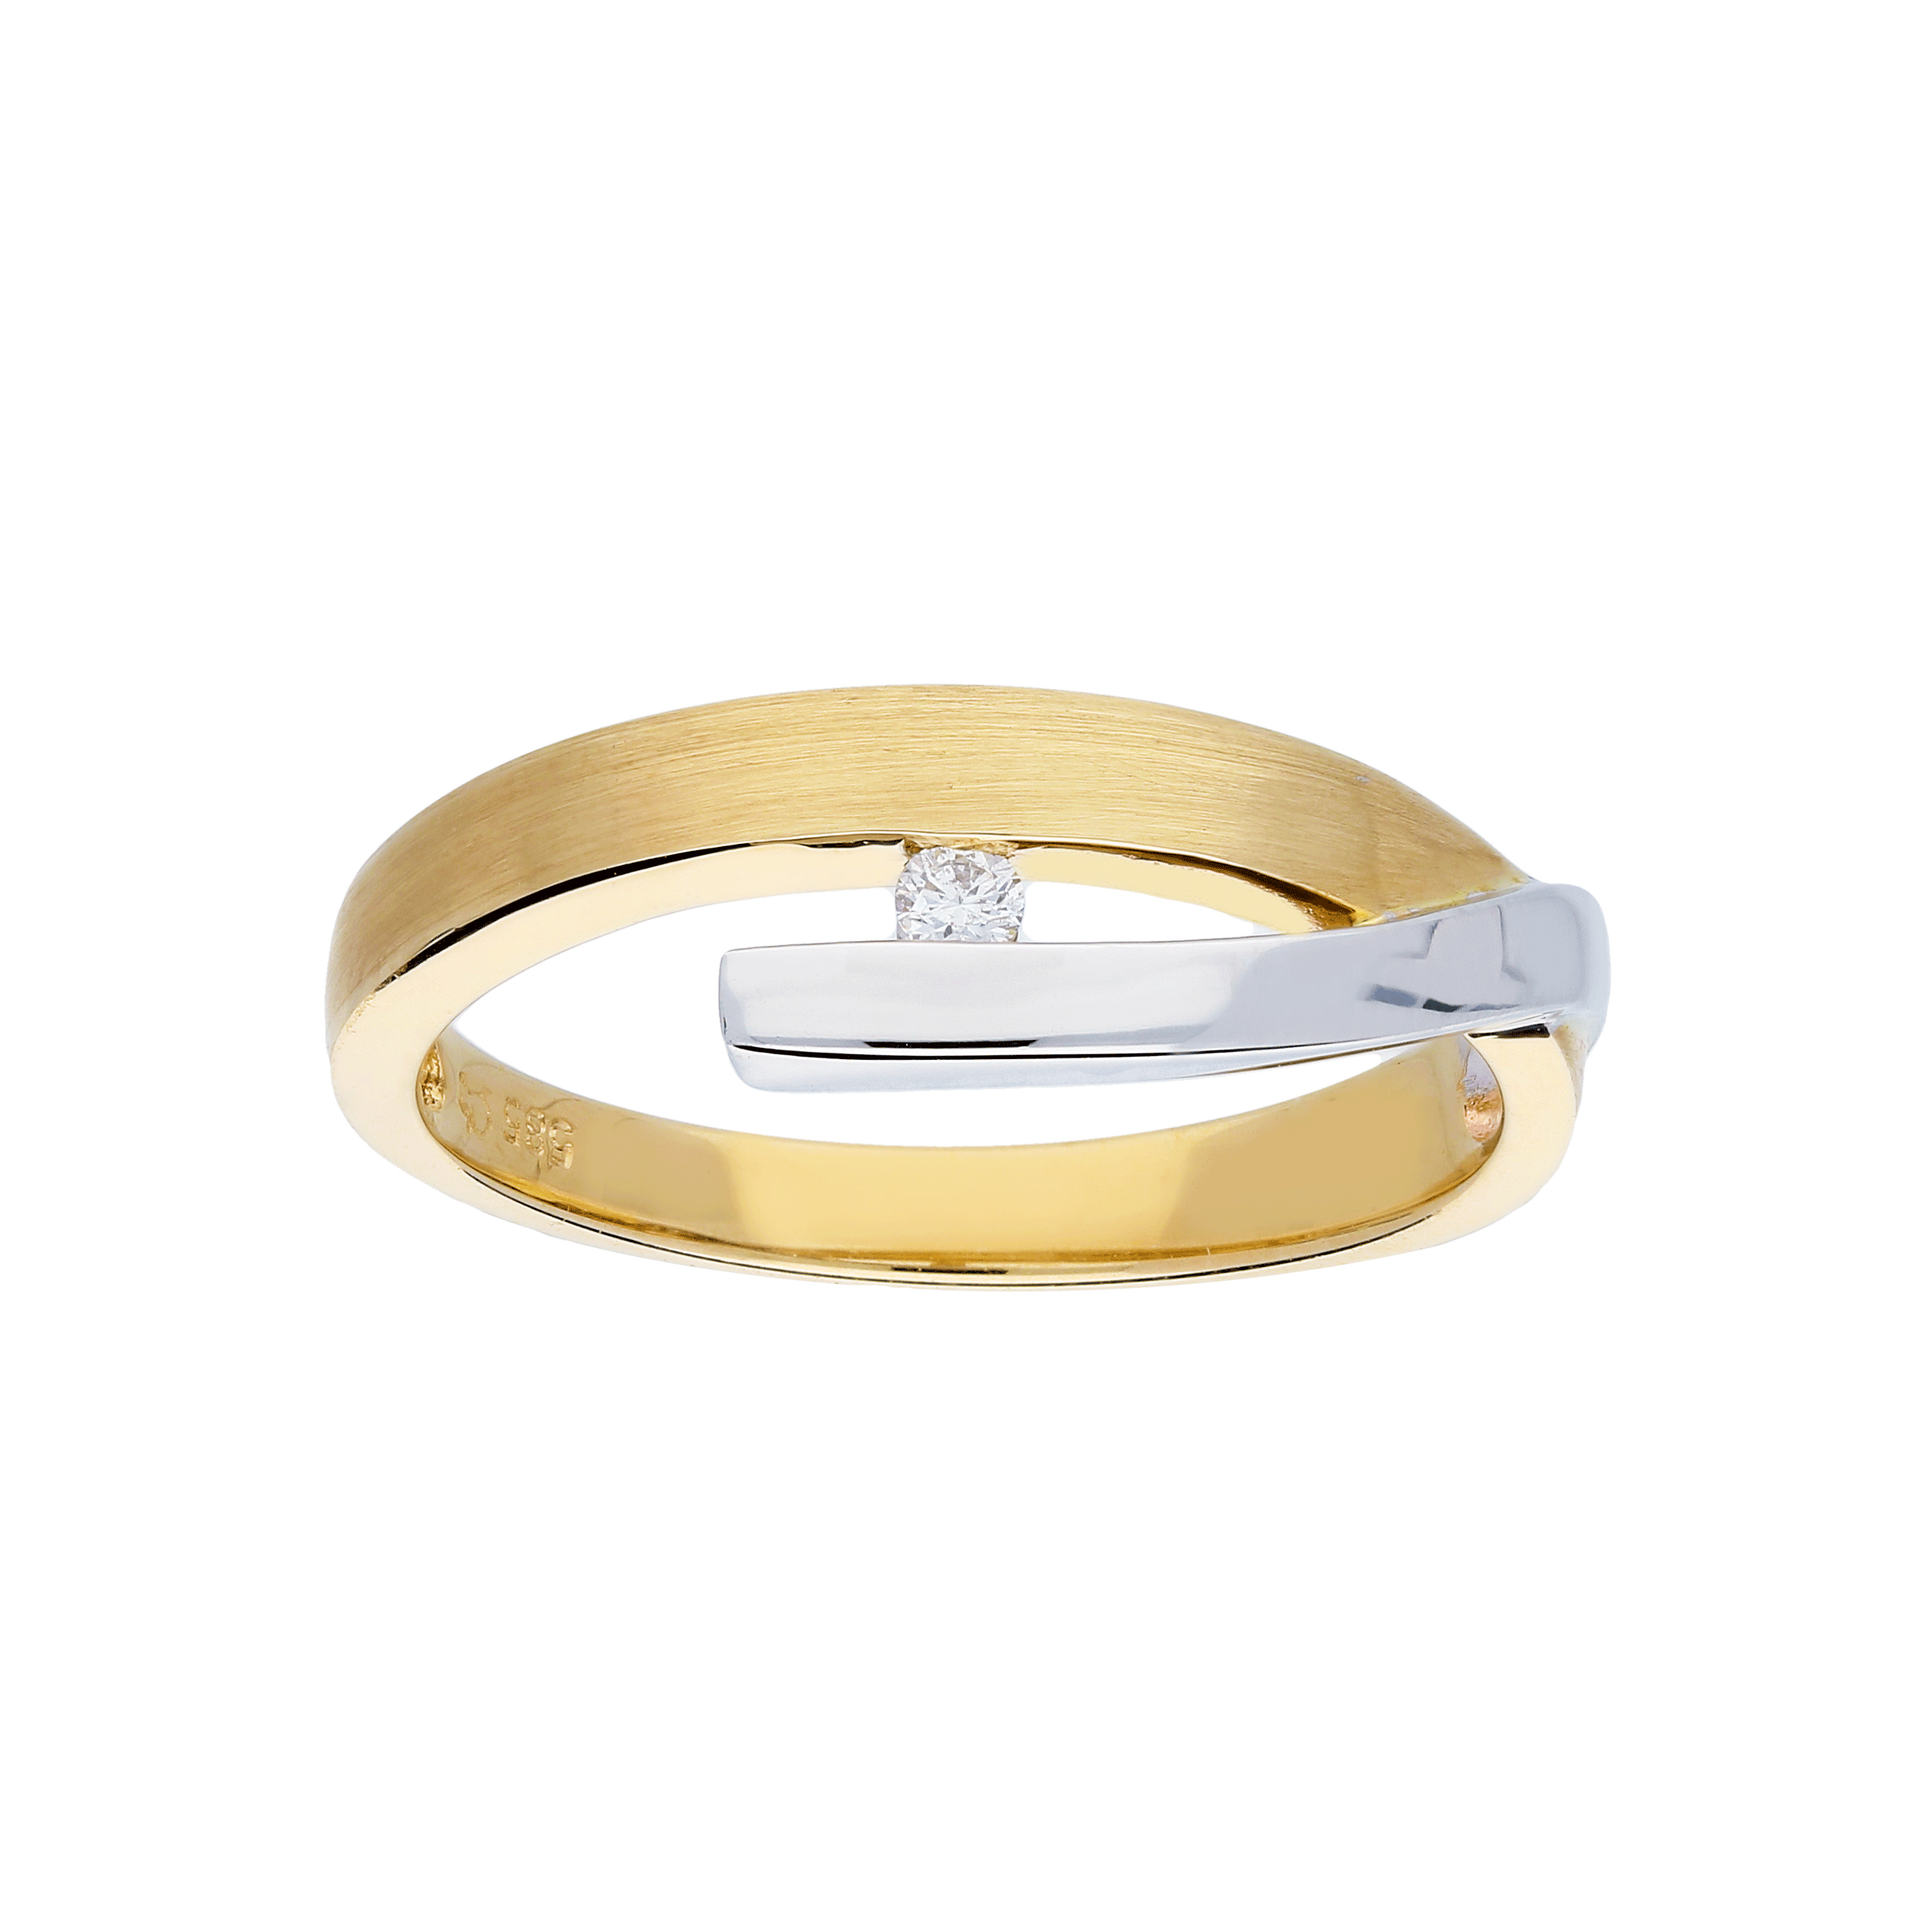 Glow Gouden Ring Bicolor Mat Glanzend Diamant 1 0.03ct G si 214.5212.50